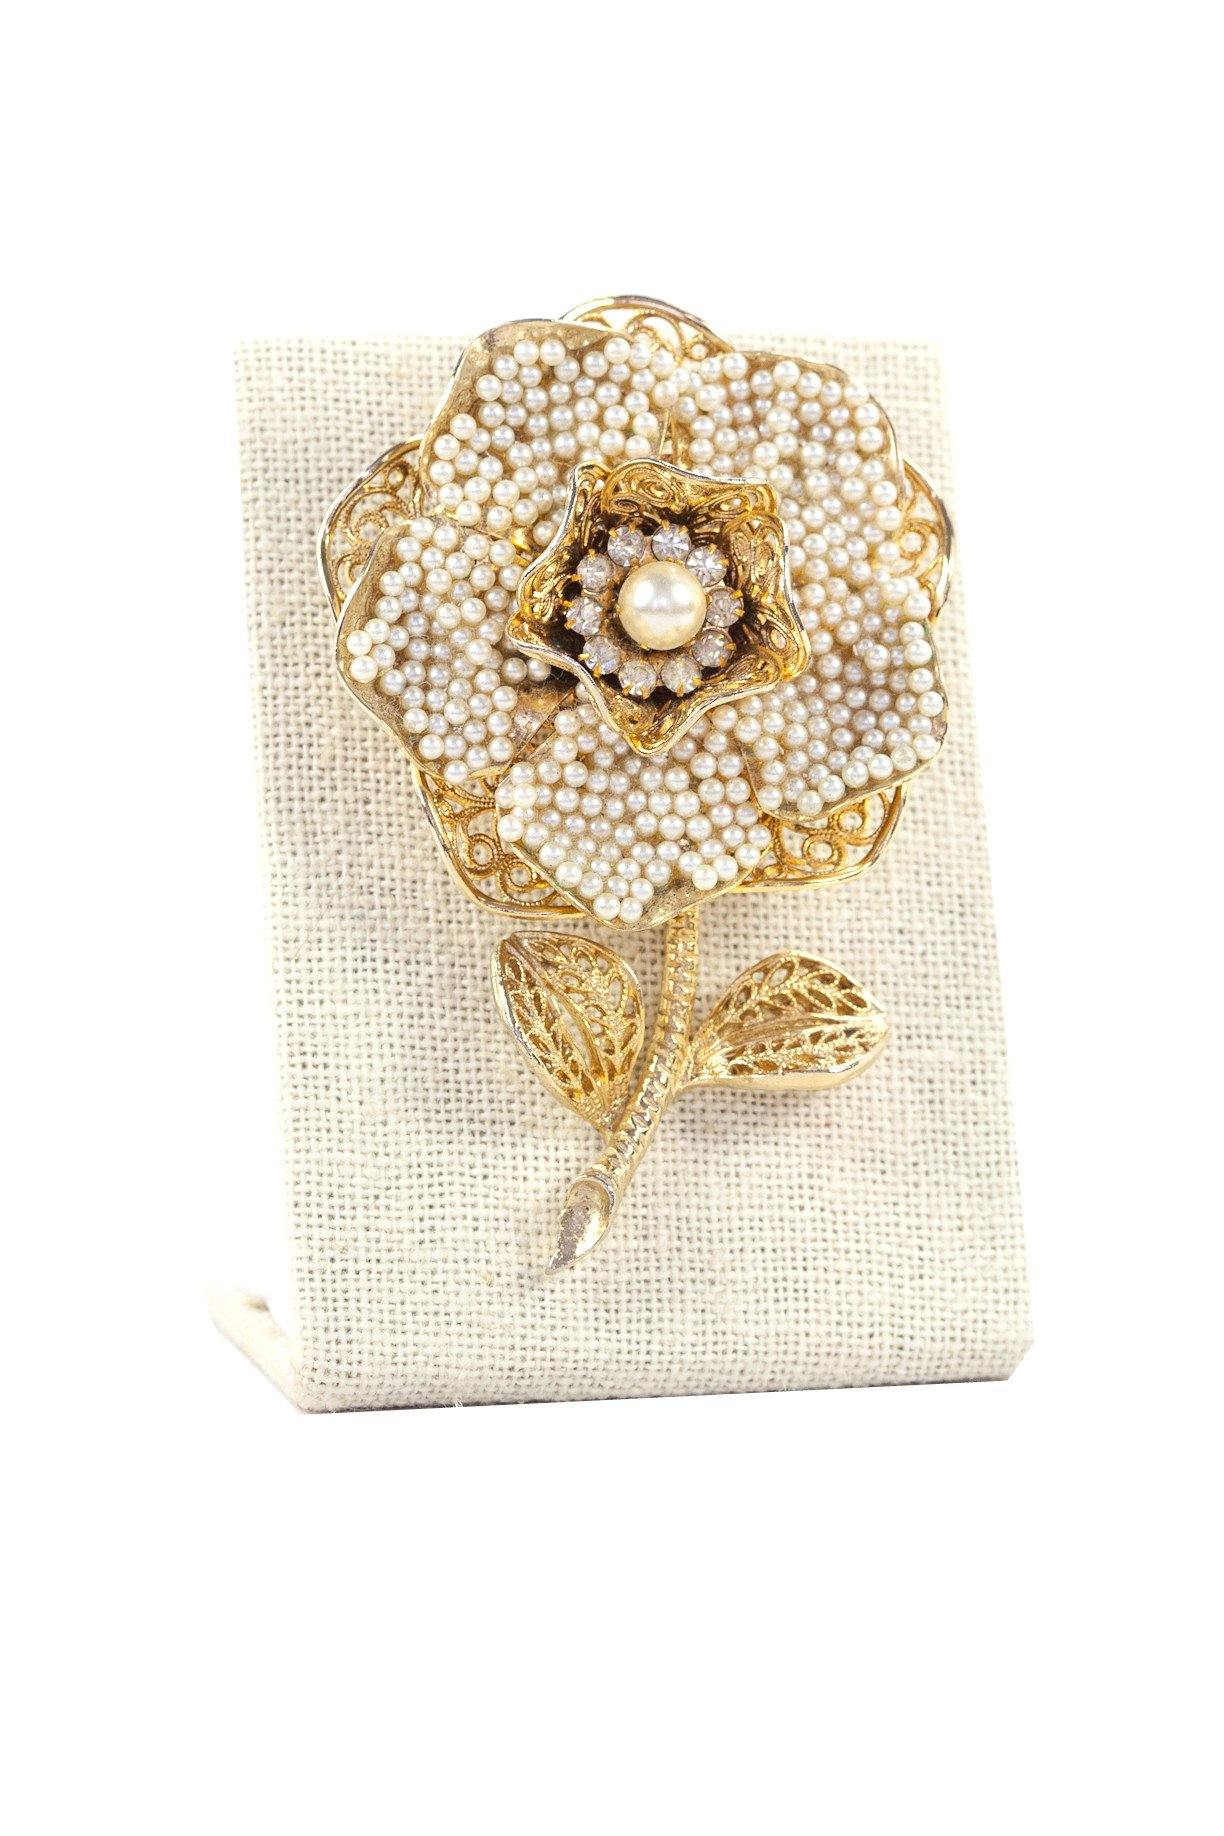 60's__Coro__Statement Floral Brooch